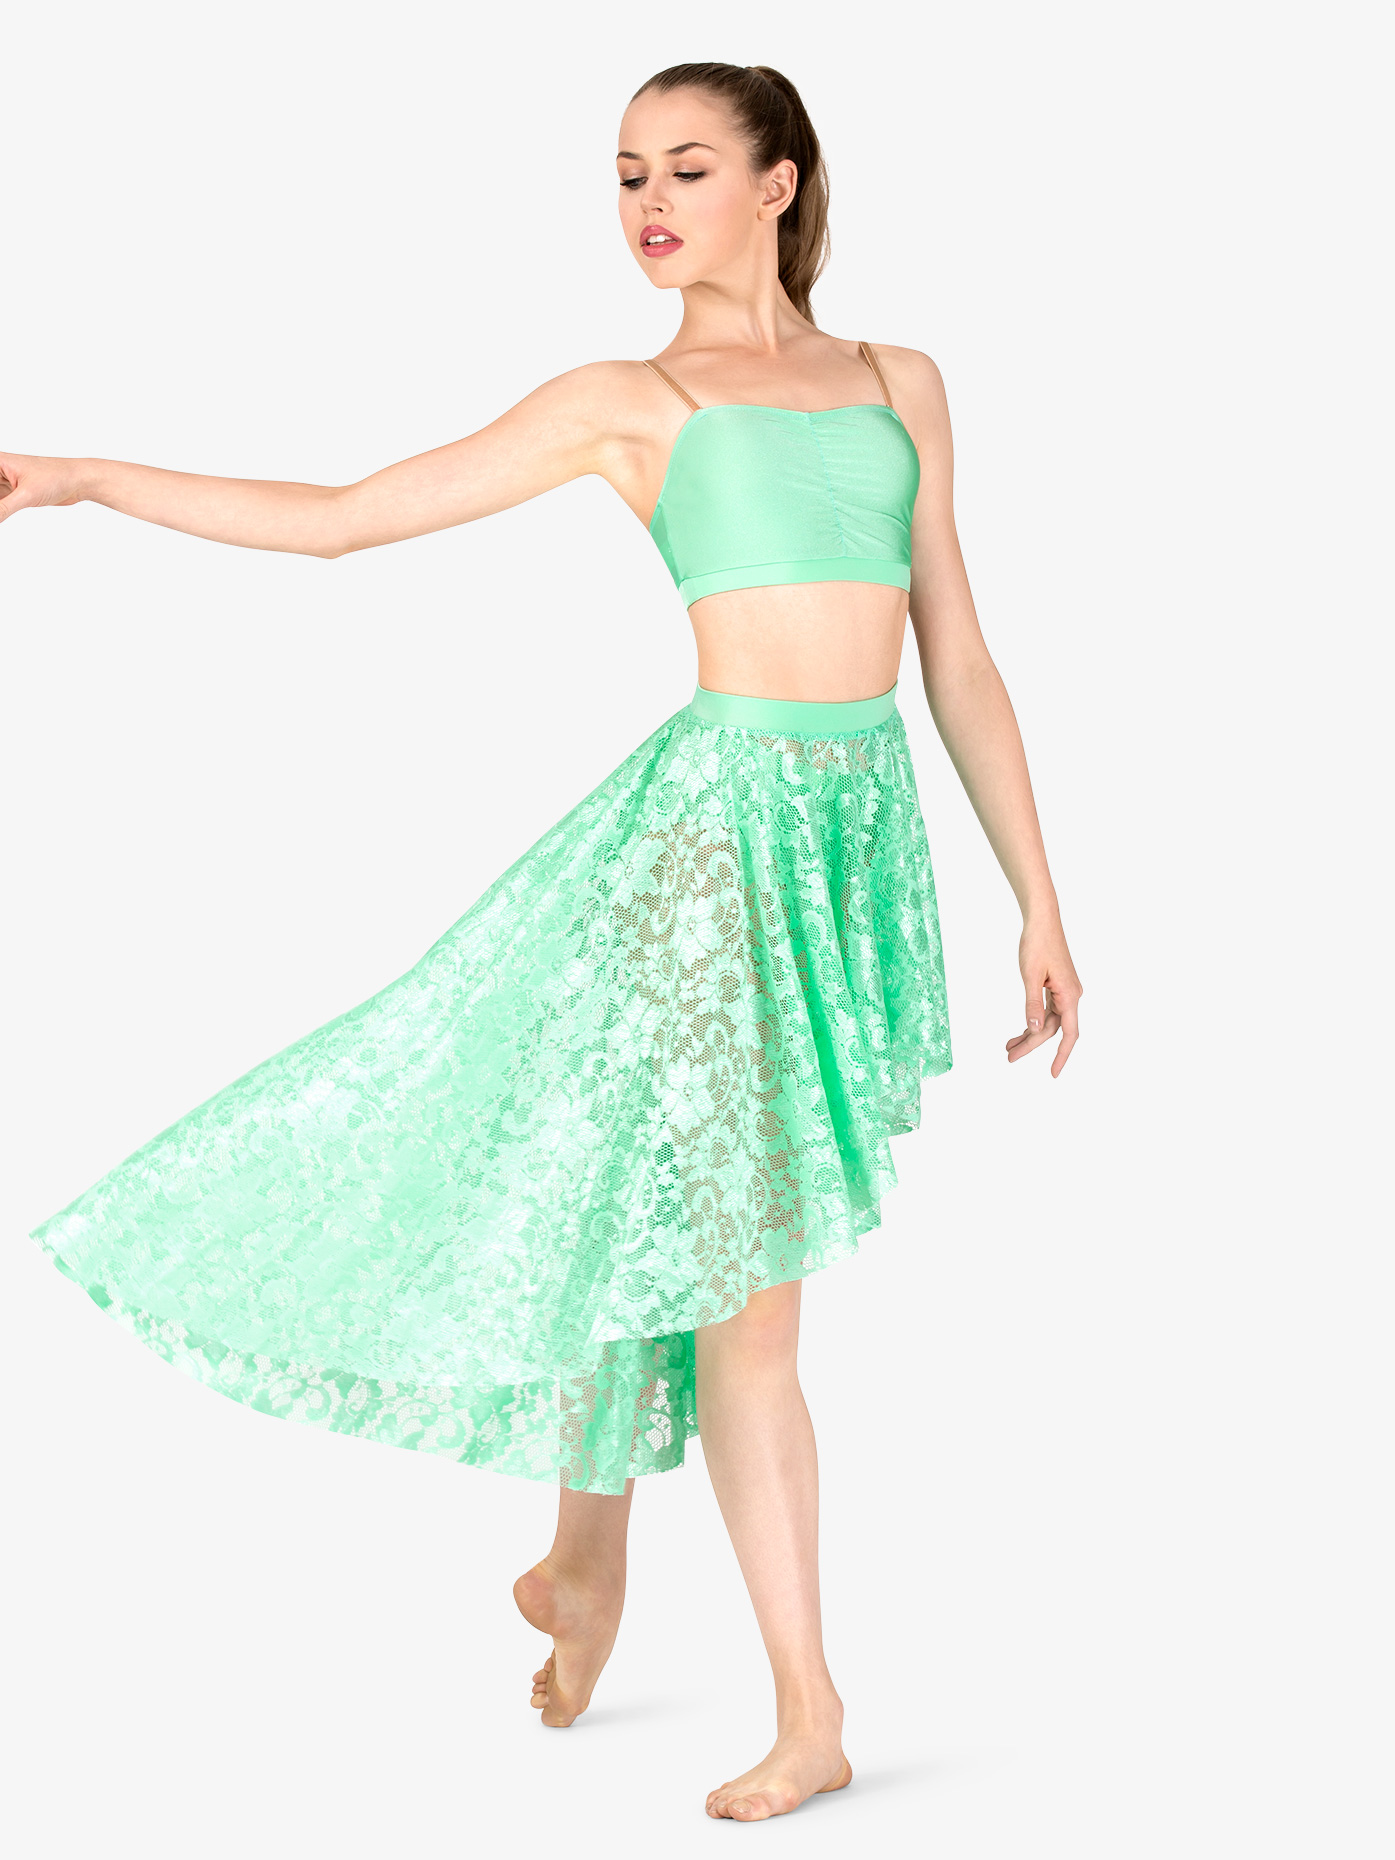 Double Platinum Adult Emballe Lace High-Low Skirt N7262